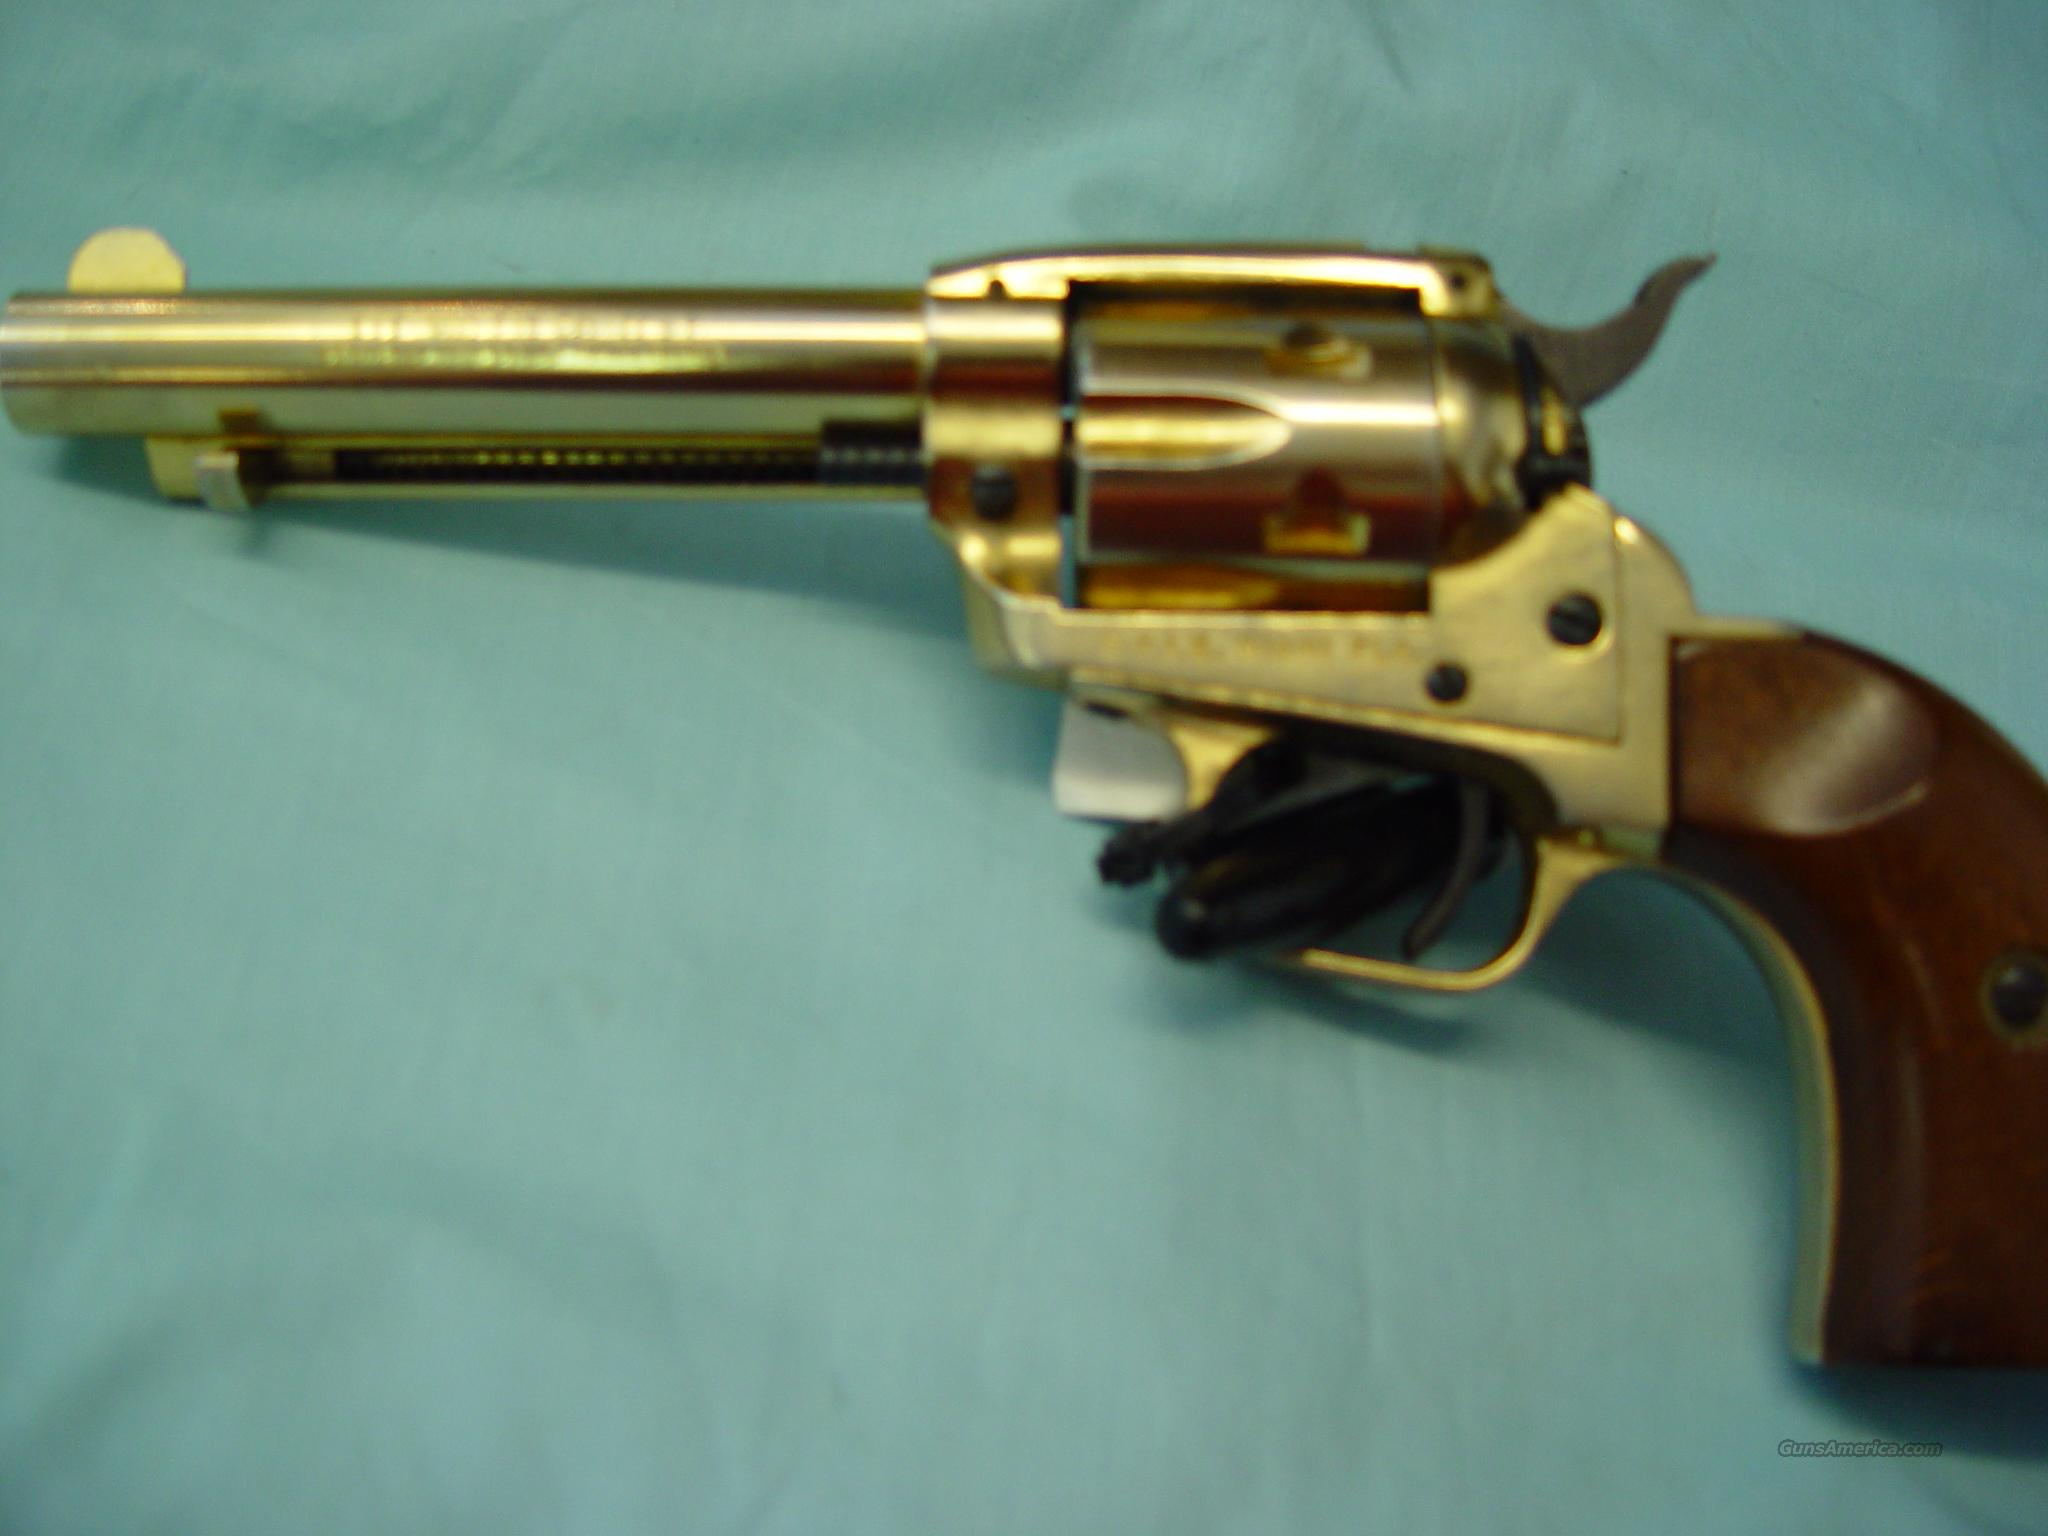 FIE mo# E-15 (needs service) 22 mag Gold plated